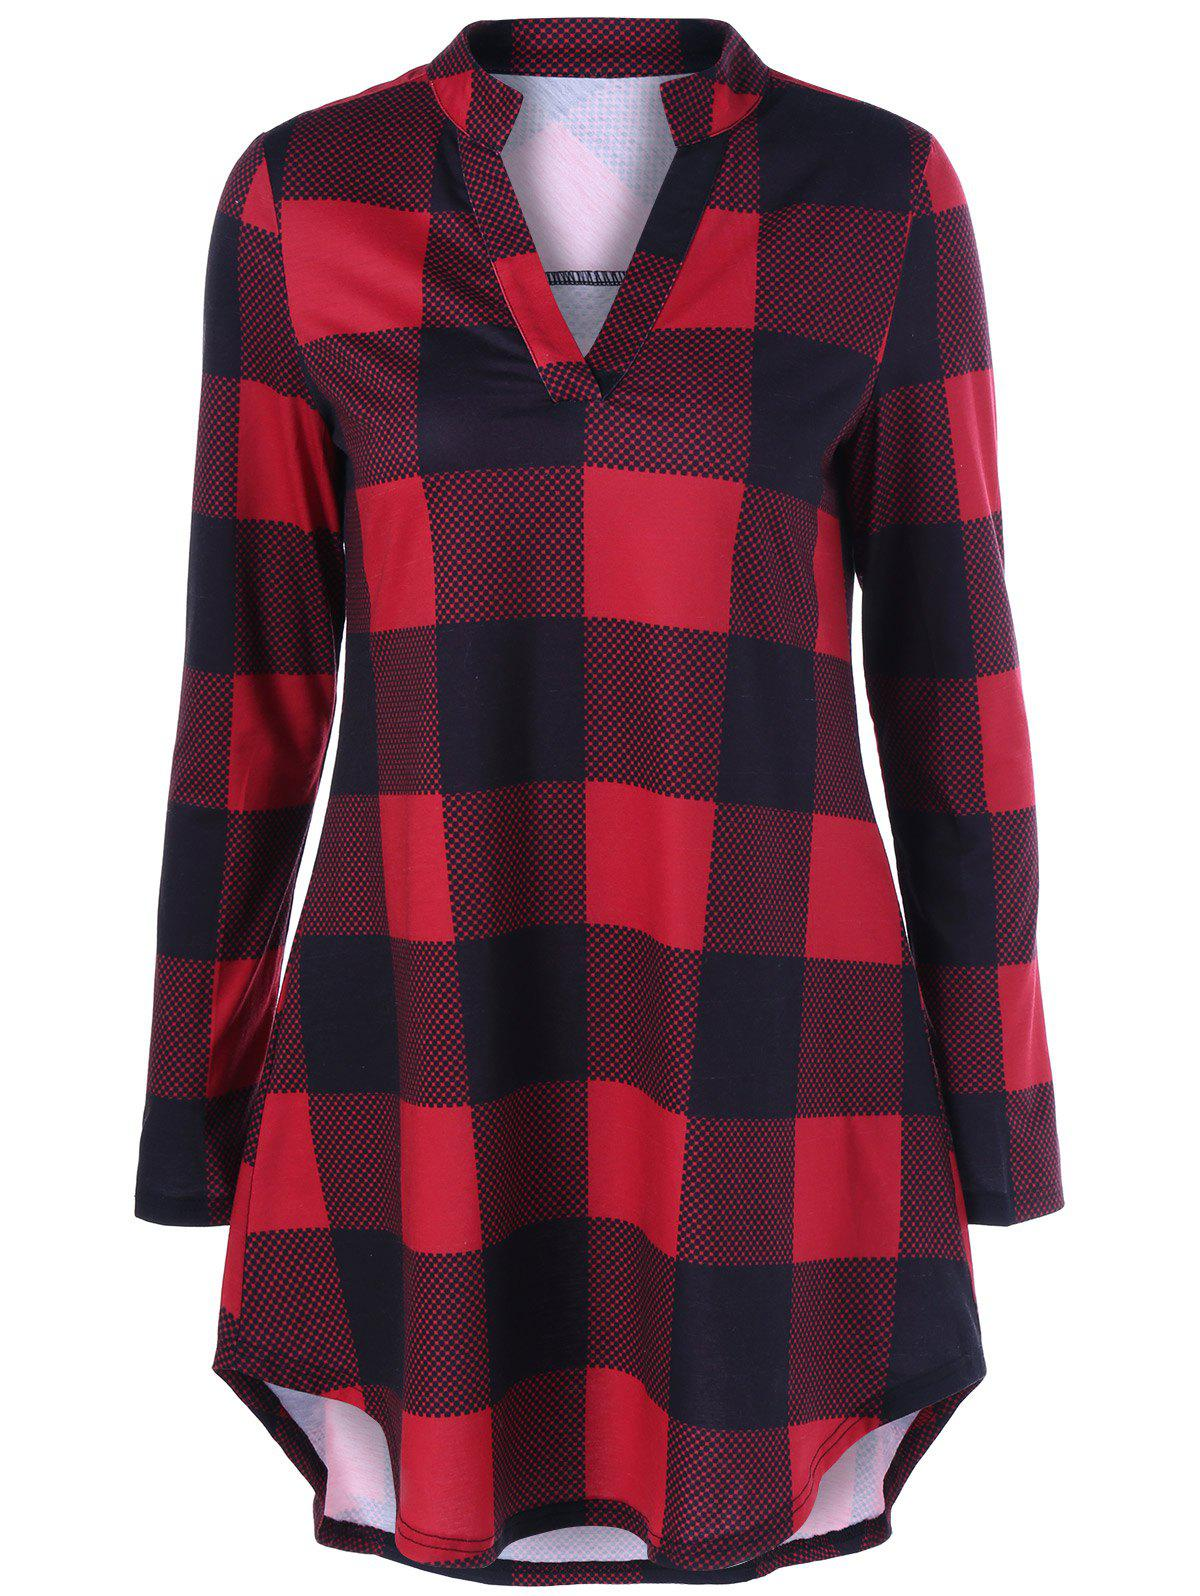 Split Neck Long Plaid Boyfriend T-ShirtWOMEN<br><br>Size: 3XL; Color: RED WITH BLACK; Material: Polyester,Spandex; Sleeve Length: Full; Collar: V-Neck; Style: Casual; Pattern Type: Plaid; Season: Fall,Spring; Weight: 0.2780kg; Package Contents: 1 x T-Shirt;